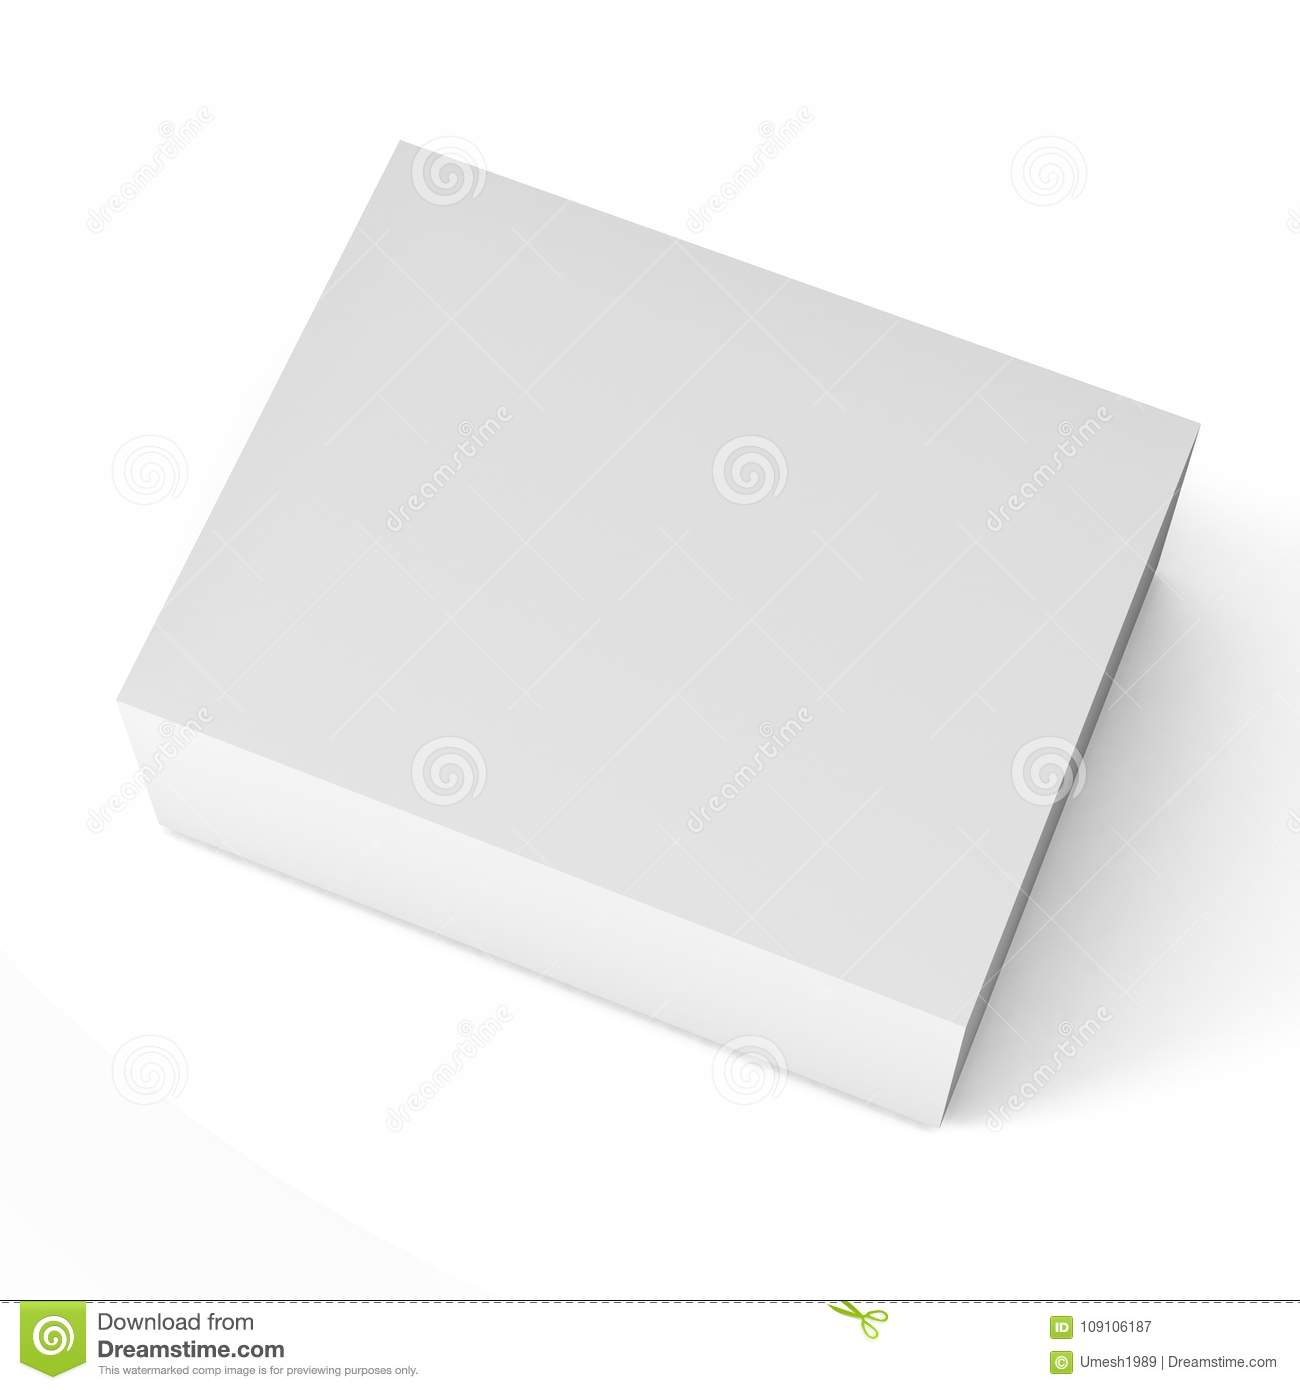 Close up of a white box template on white background Illustration